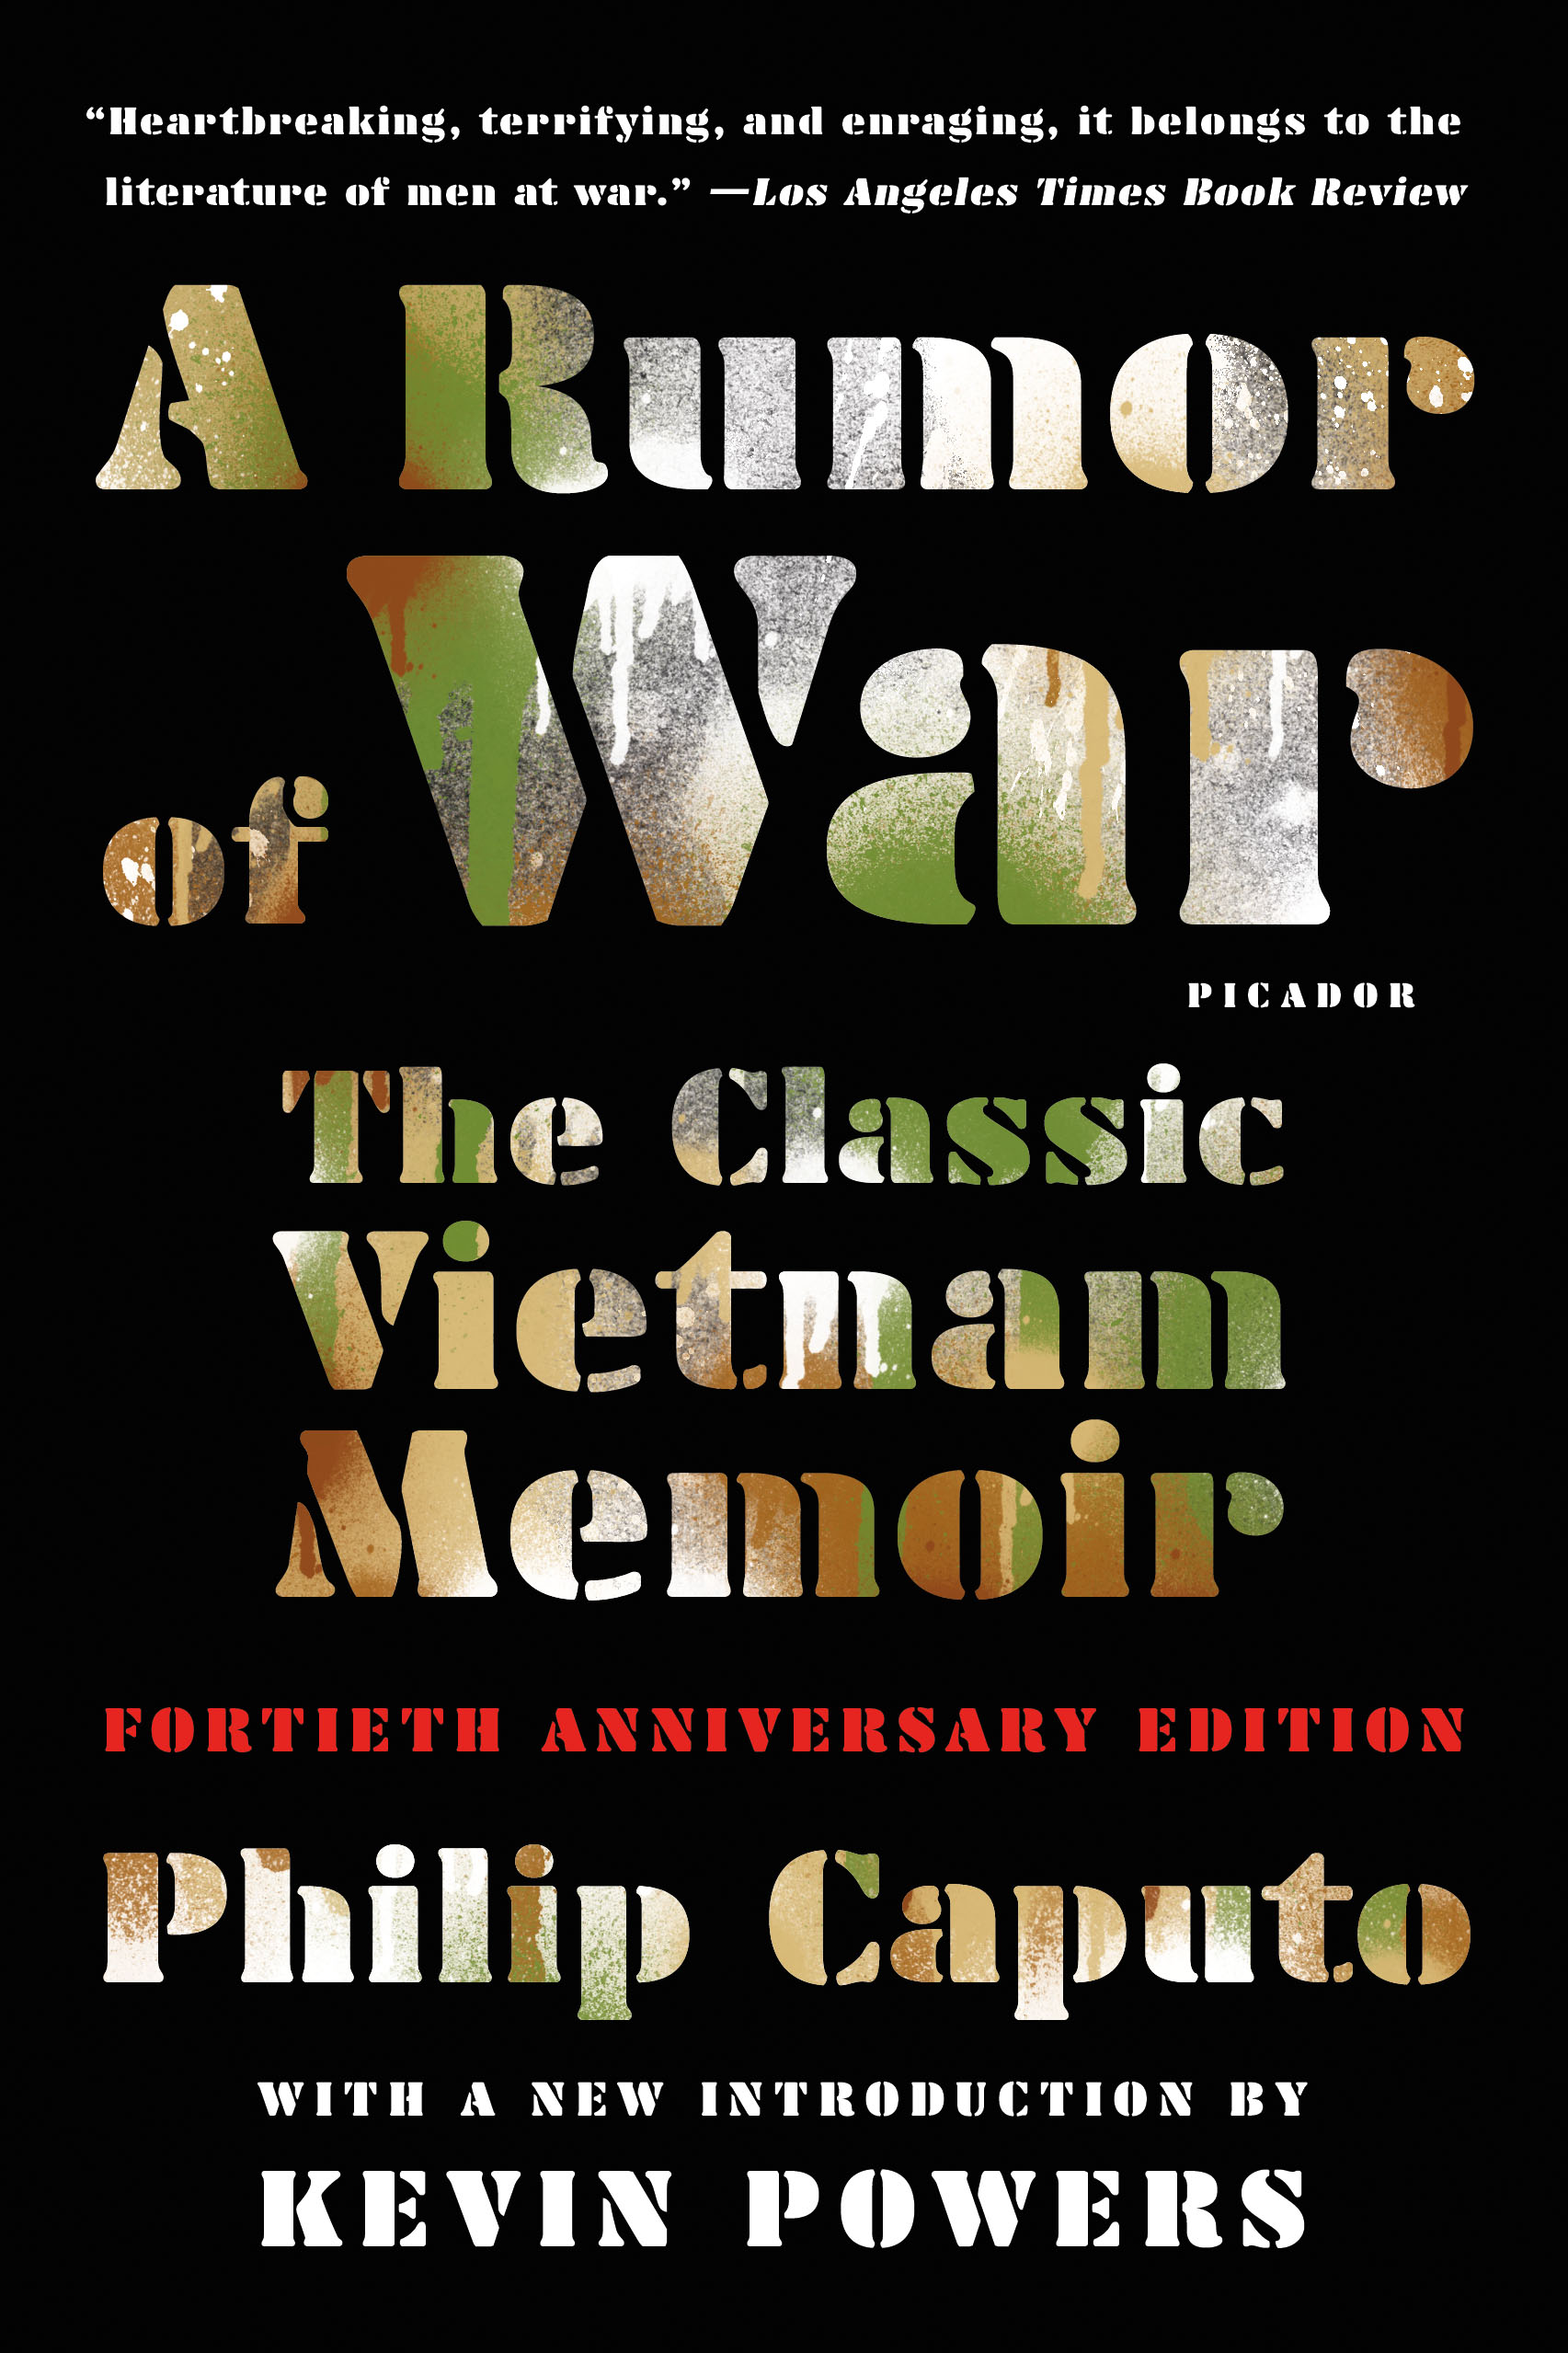 rumor of war A rumor of war follows the vietnam experiences of lieutenant phillip caputo in three parts at the beginning of the war, lt caputo and his fellow marines feel that the struggle is a small one perhaps it will be over soon.